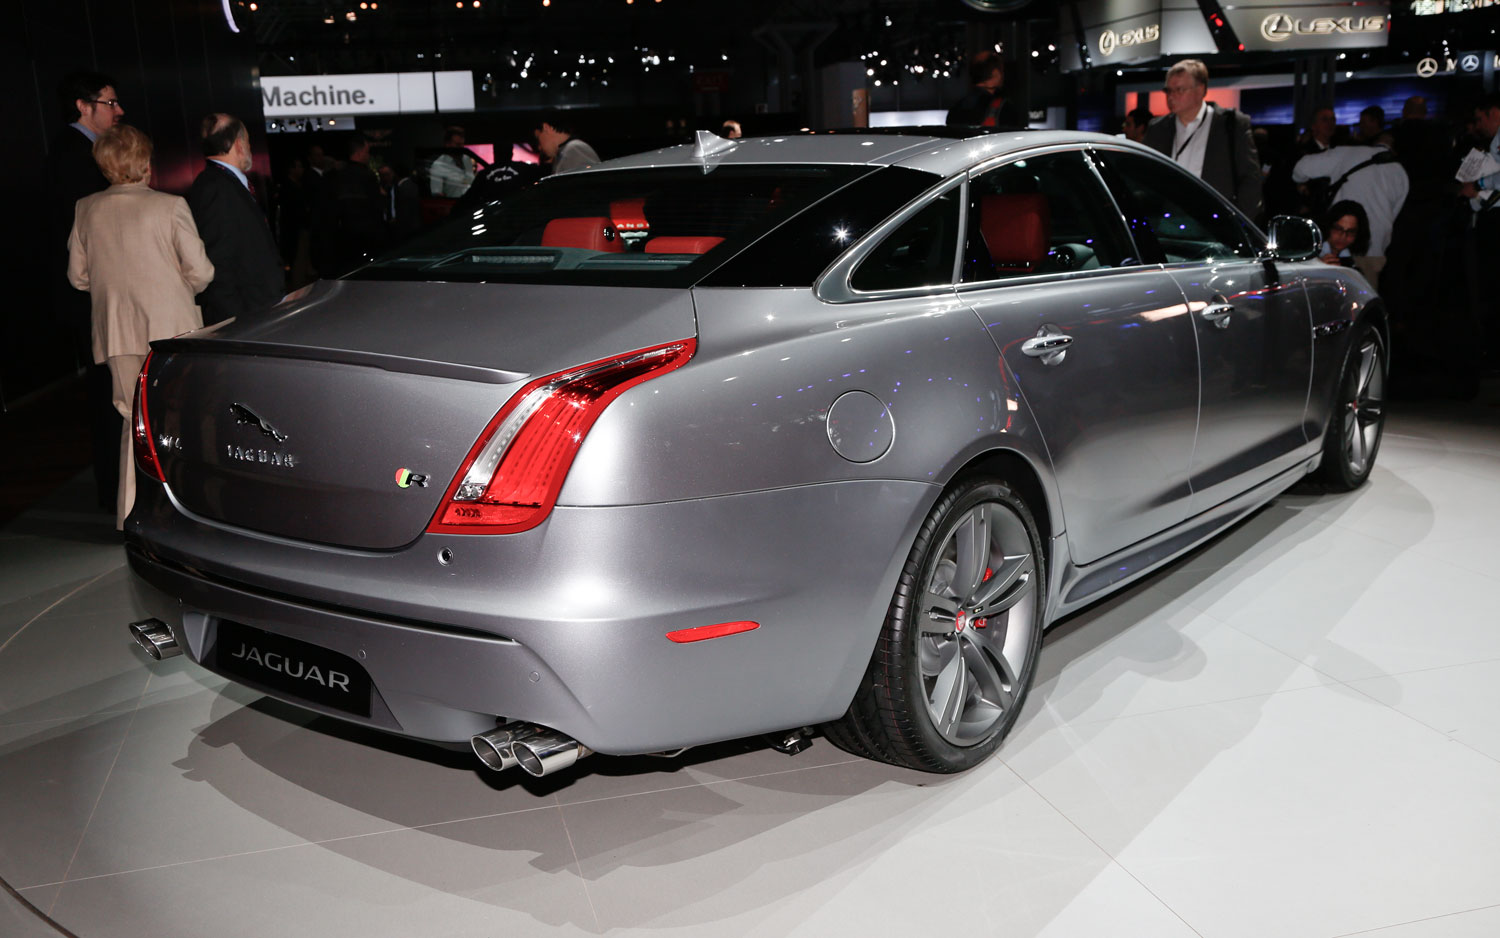 xj wallpaper full xjl hd high moibibiki for photos with resolution in jaguar price car new coulor of images black desktop mobile purple pc modifications xs pictures colour